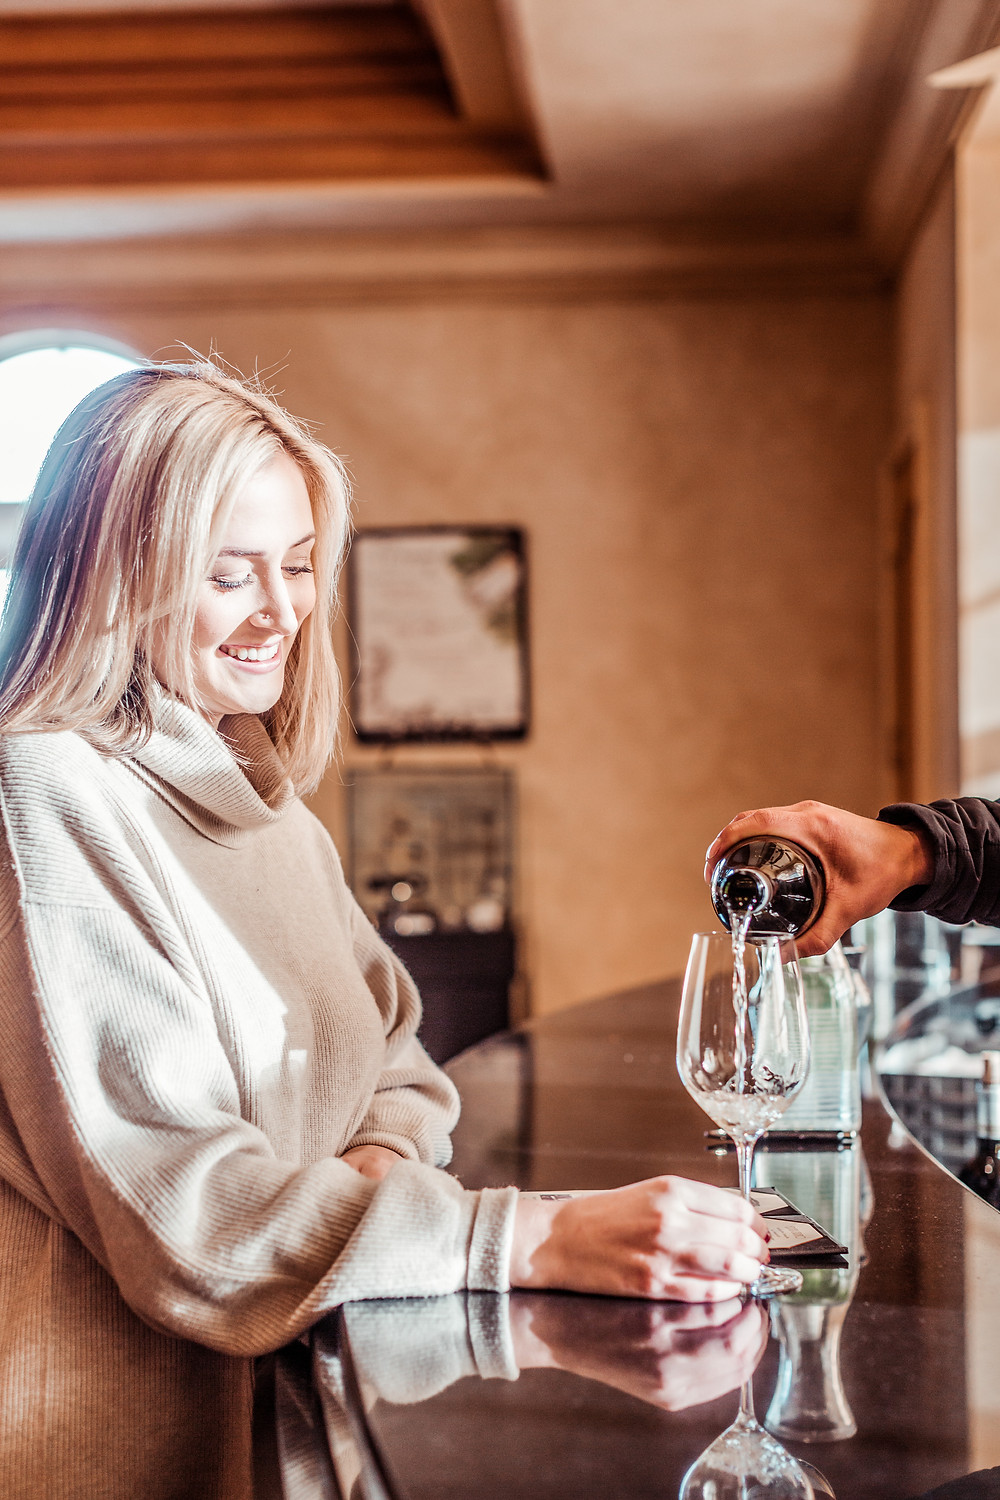 Audra tavelli, sonoma grape girl, wine blog, wine blogger, what to bring wine tasting, what to wear wine tasting, wine blogger, sonoma county blogger, ferrari carano, ferrari carano winery, wine tasting, healdsburg wineries, sonoma wine tasting